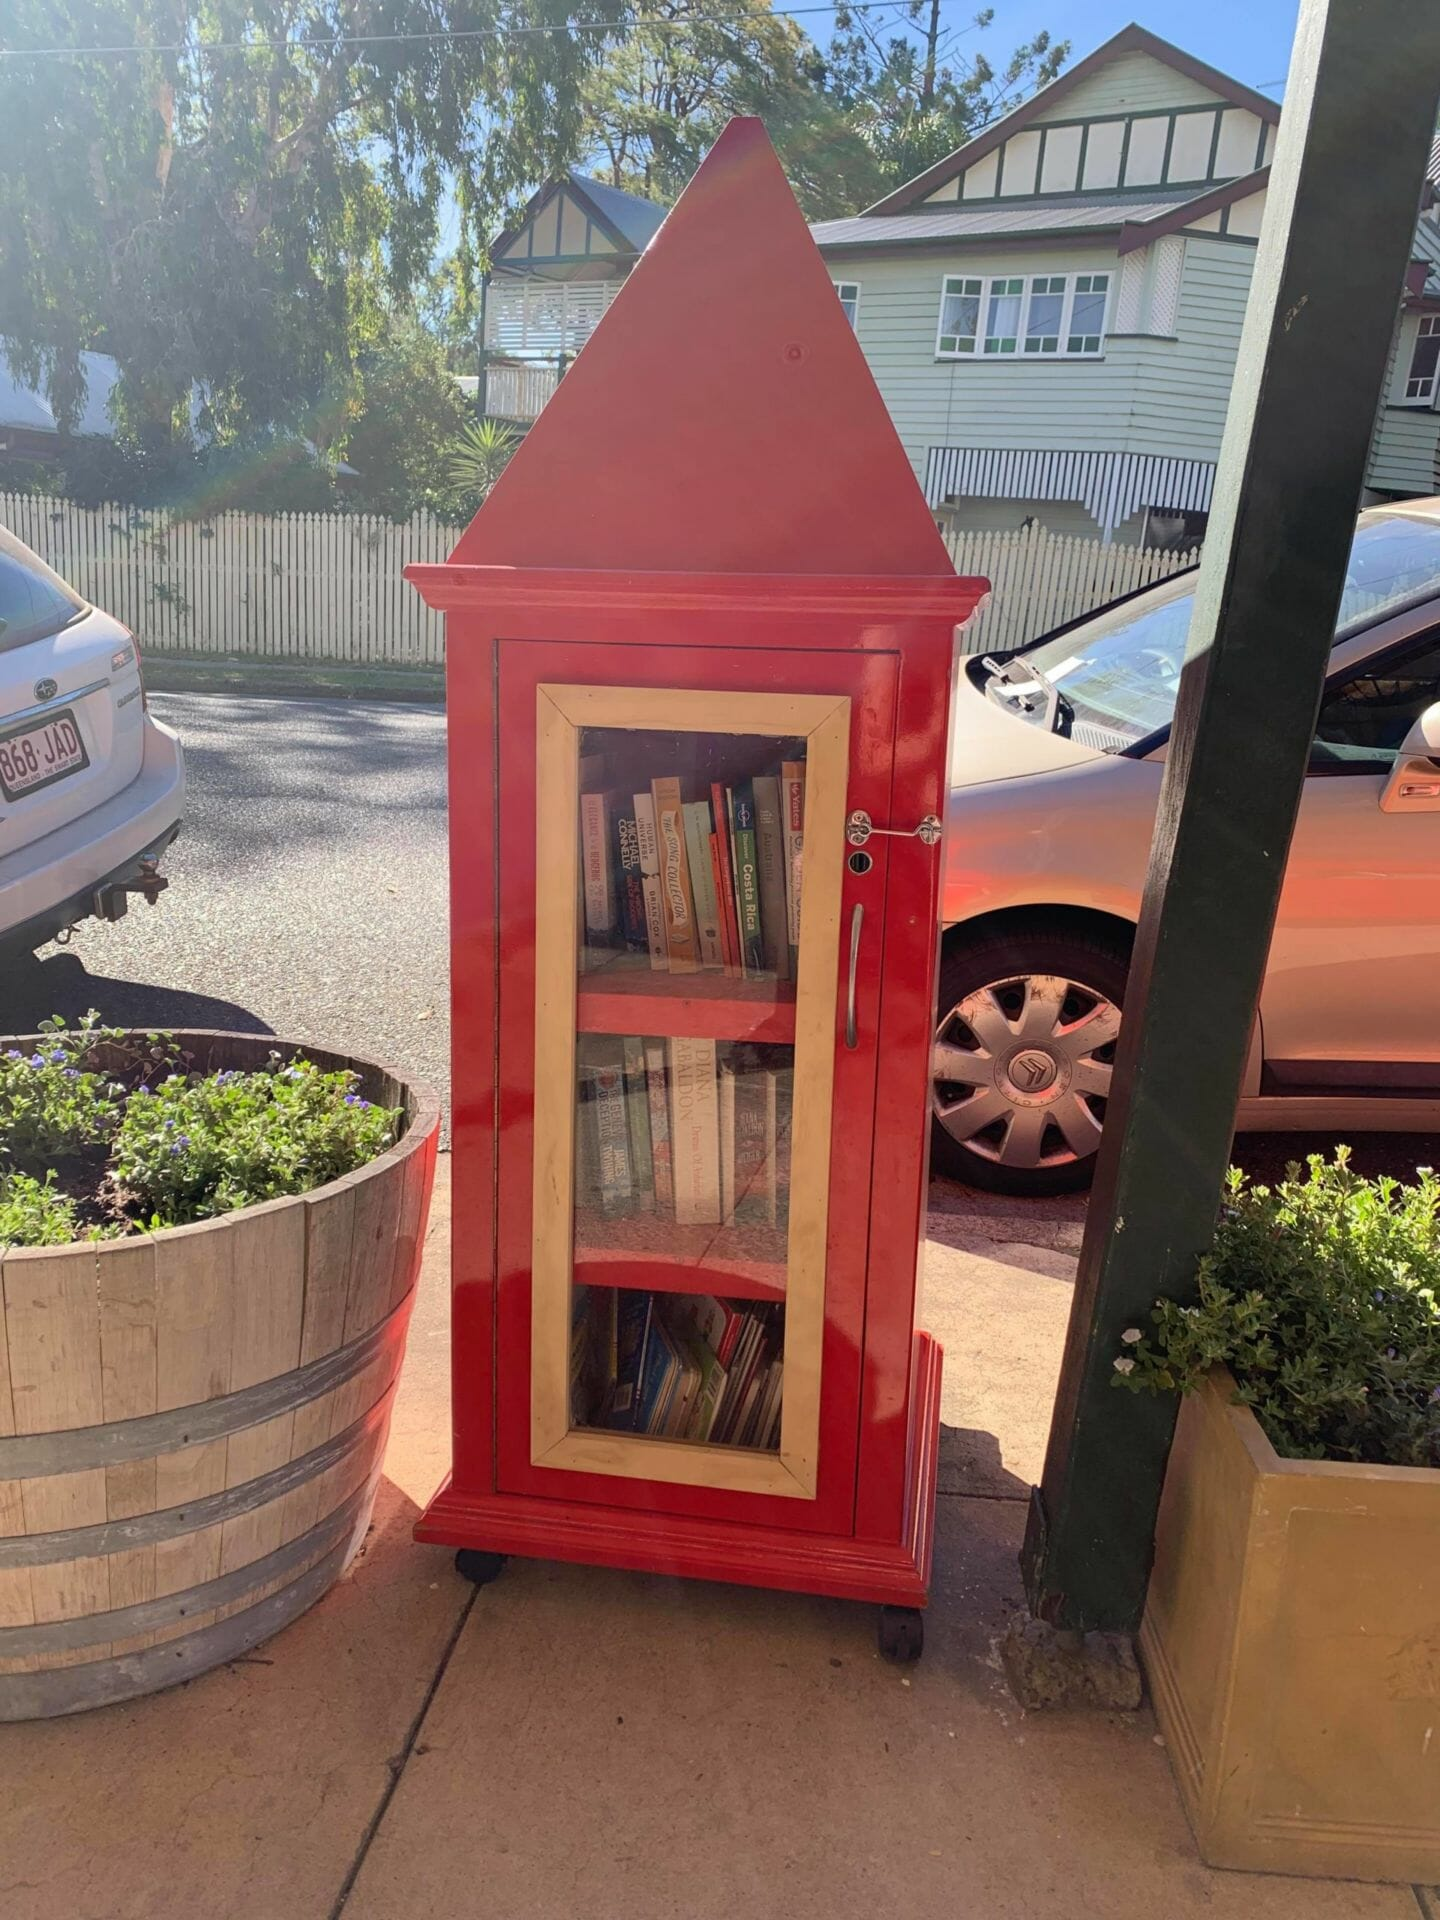 Nowhere Community Street Library